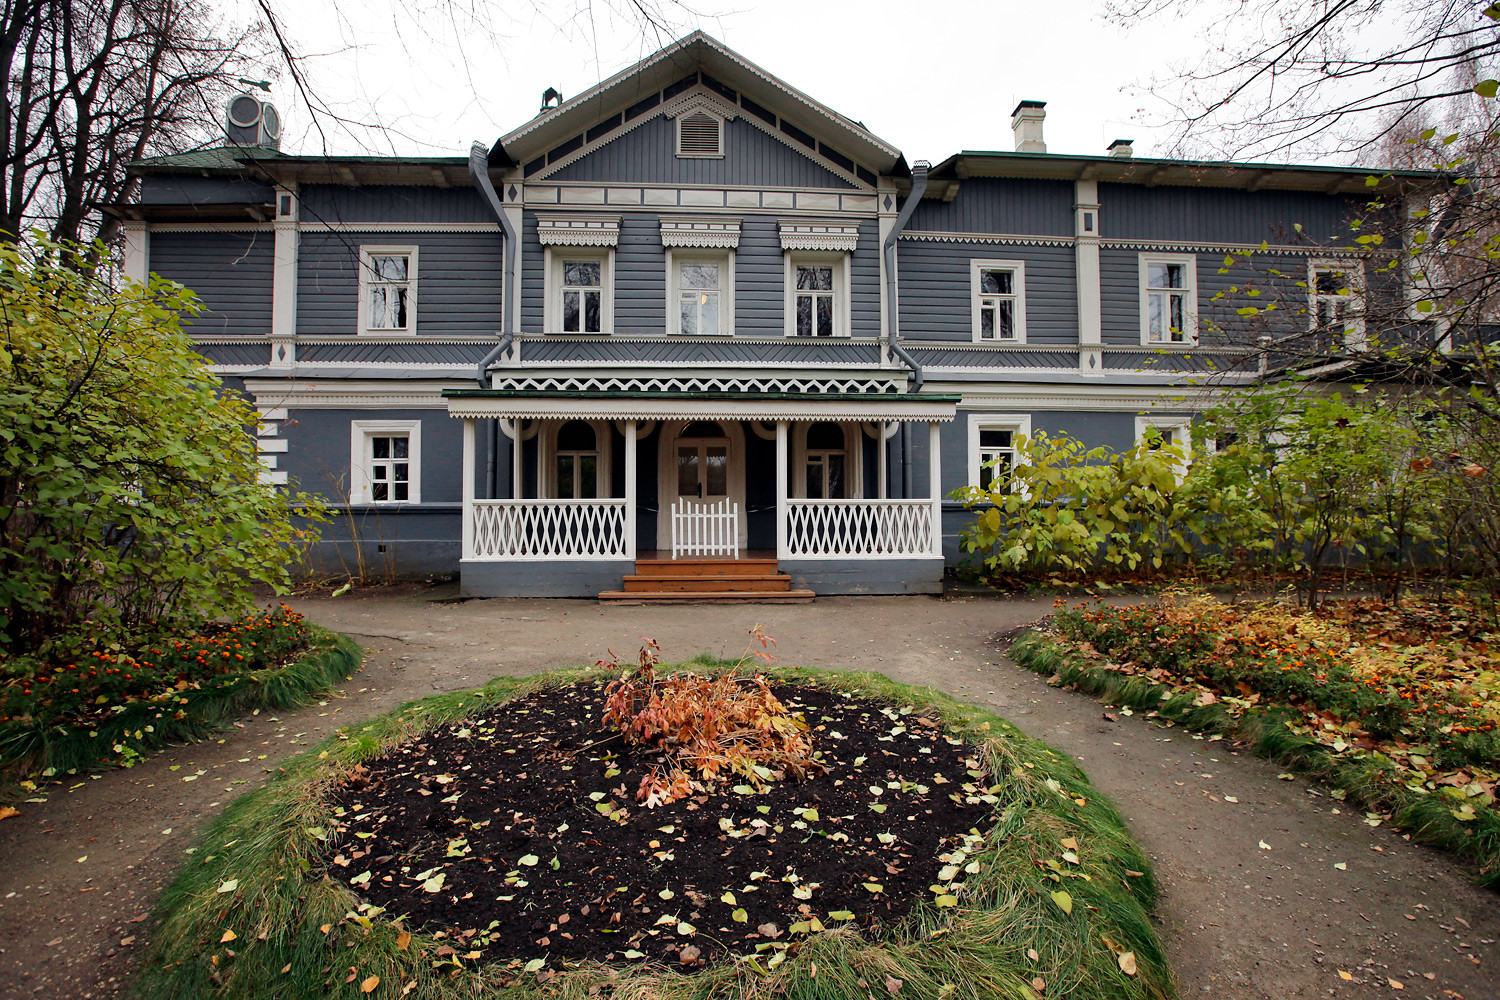 House-museum of composer Pyotr Tchaikovsky.